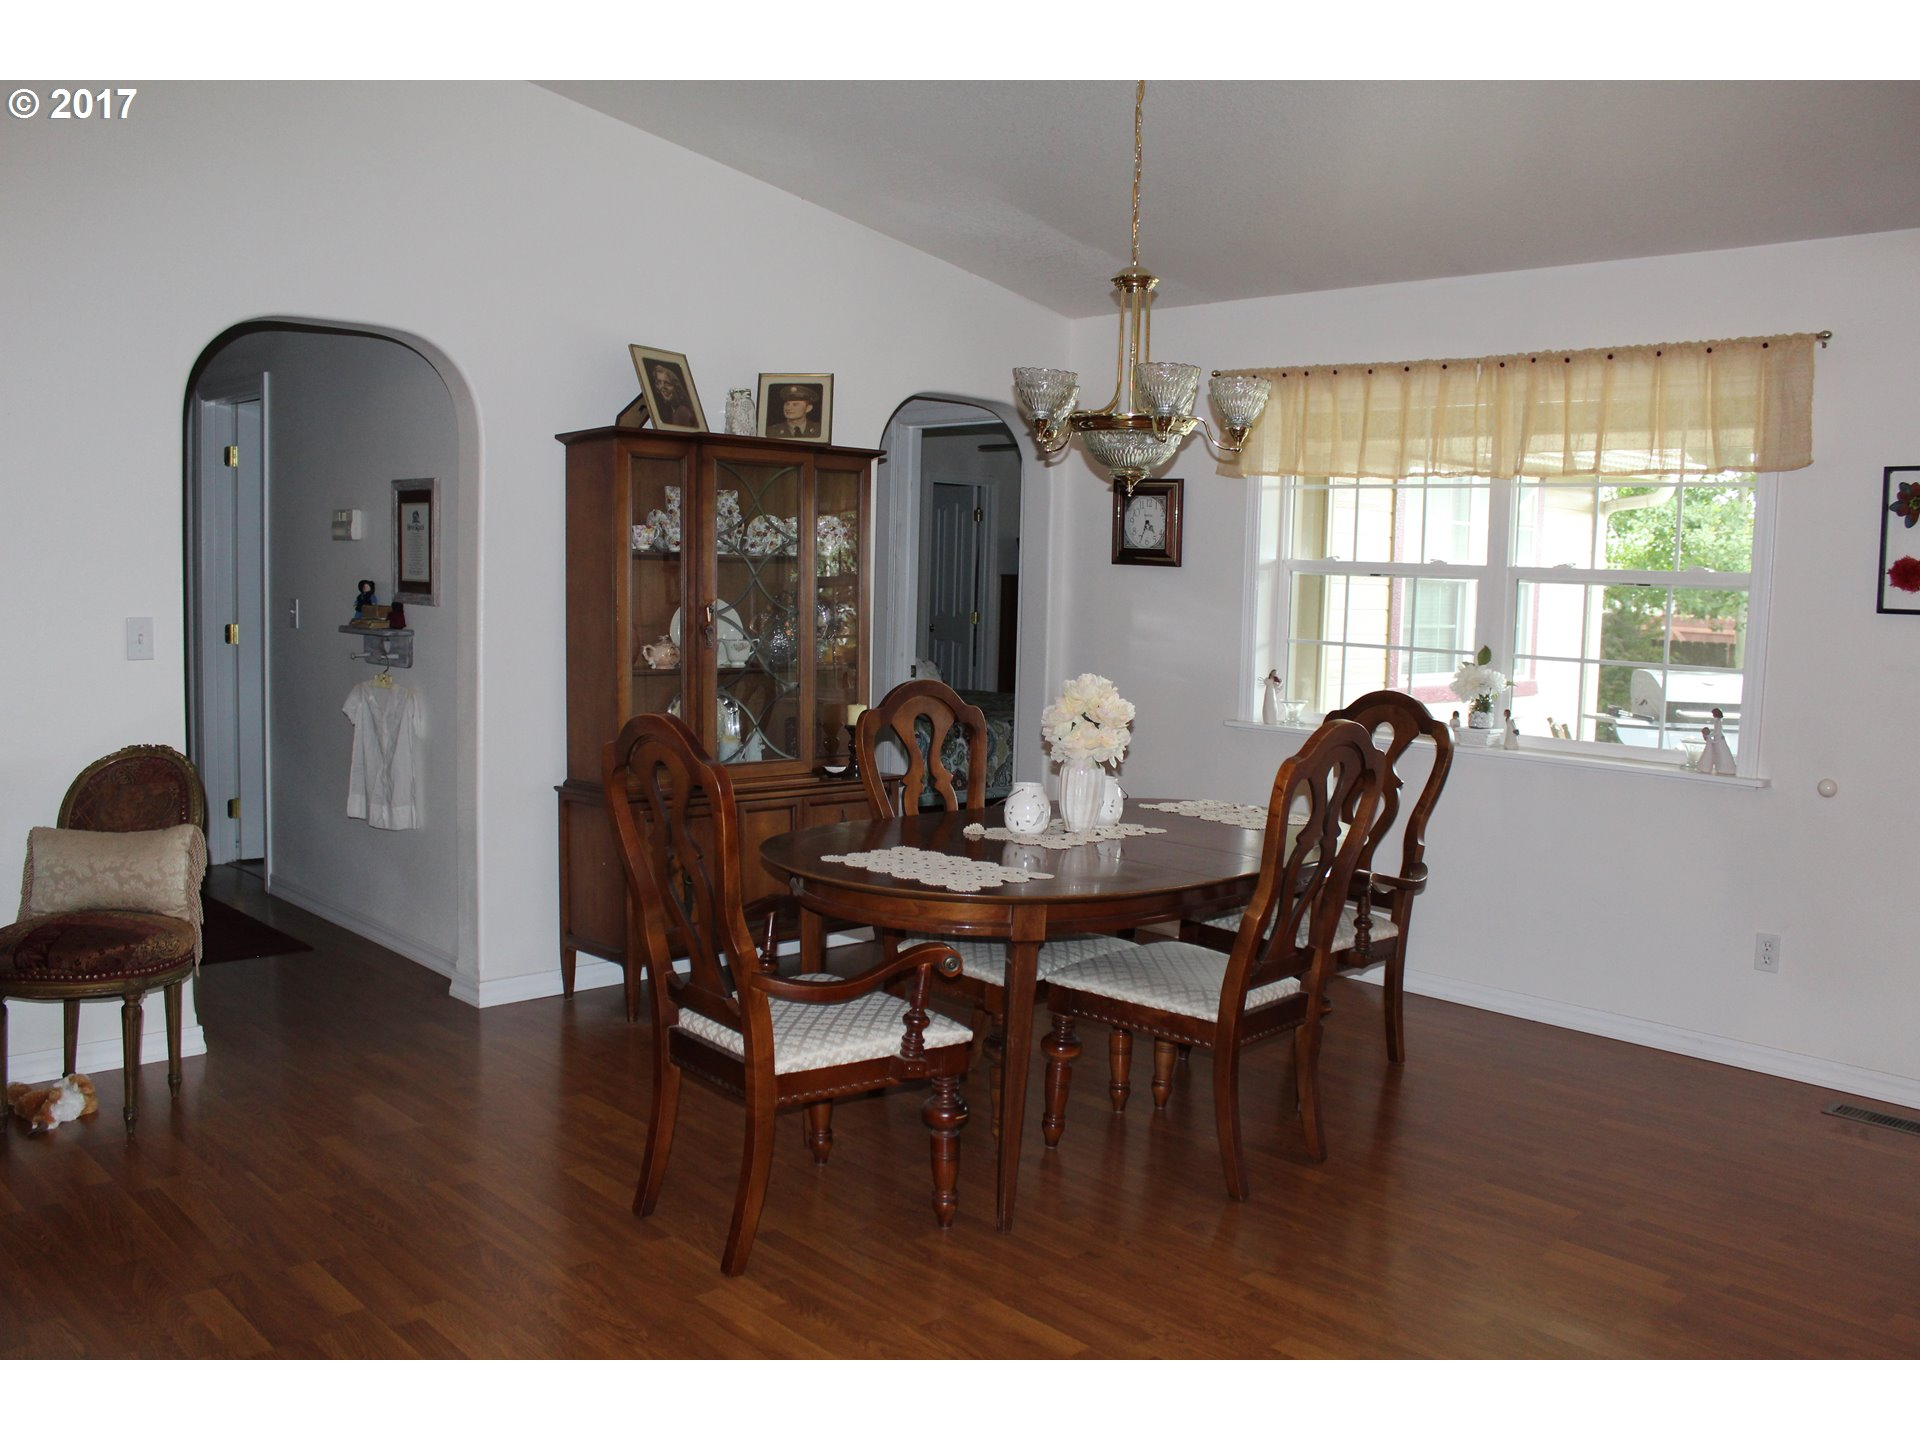 2752 sq. ft 4 bedrooms 3 bathrooms  House For Sale,Baker City, OR